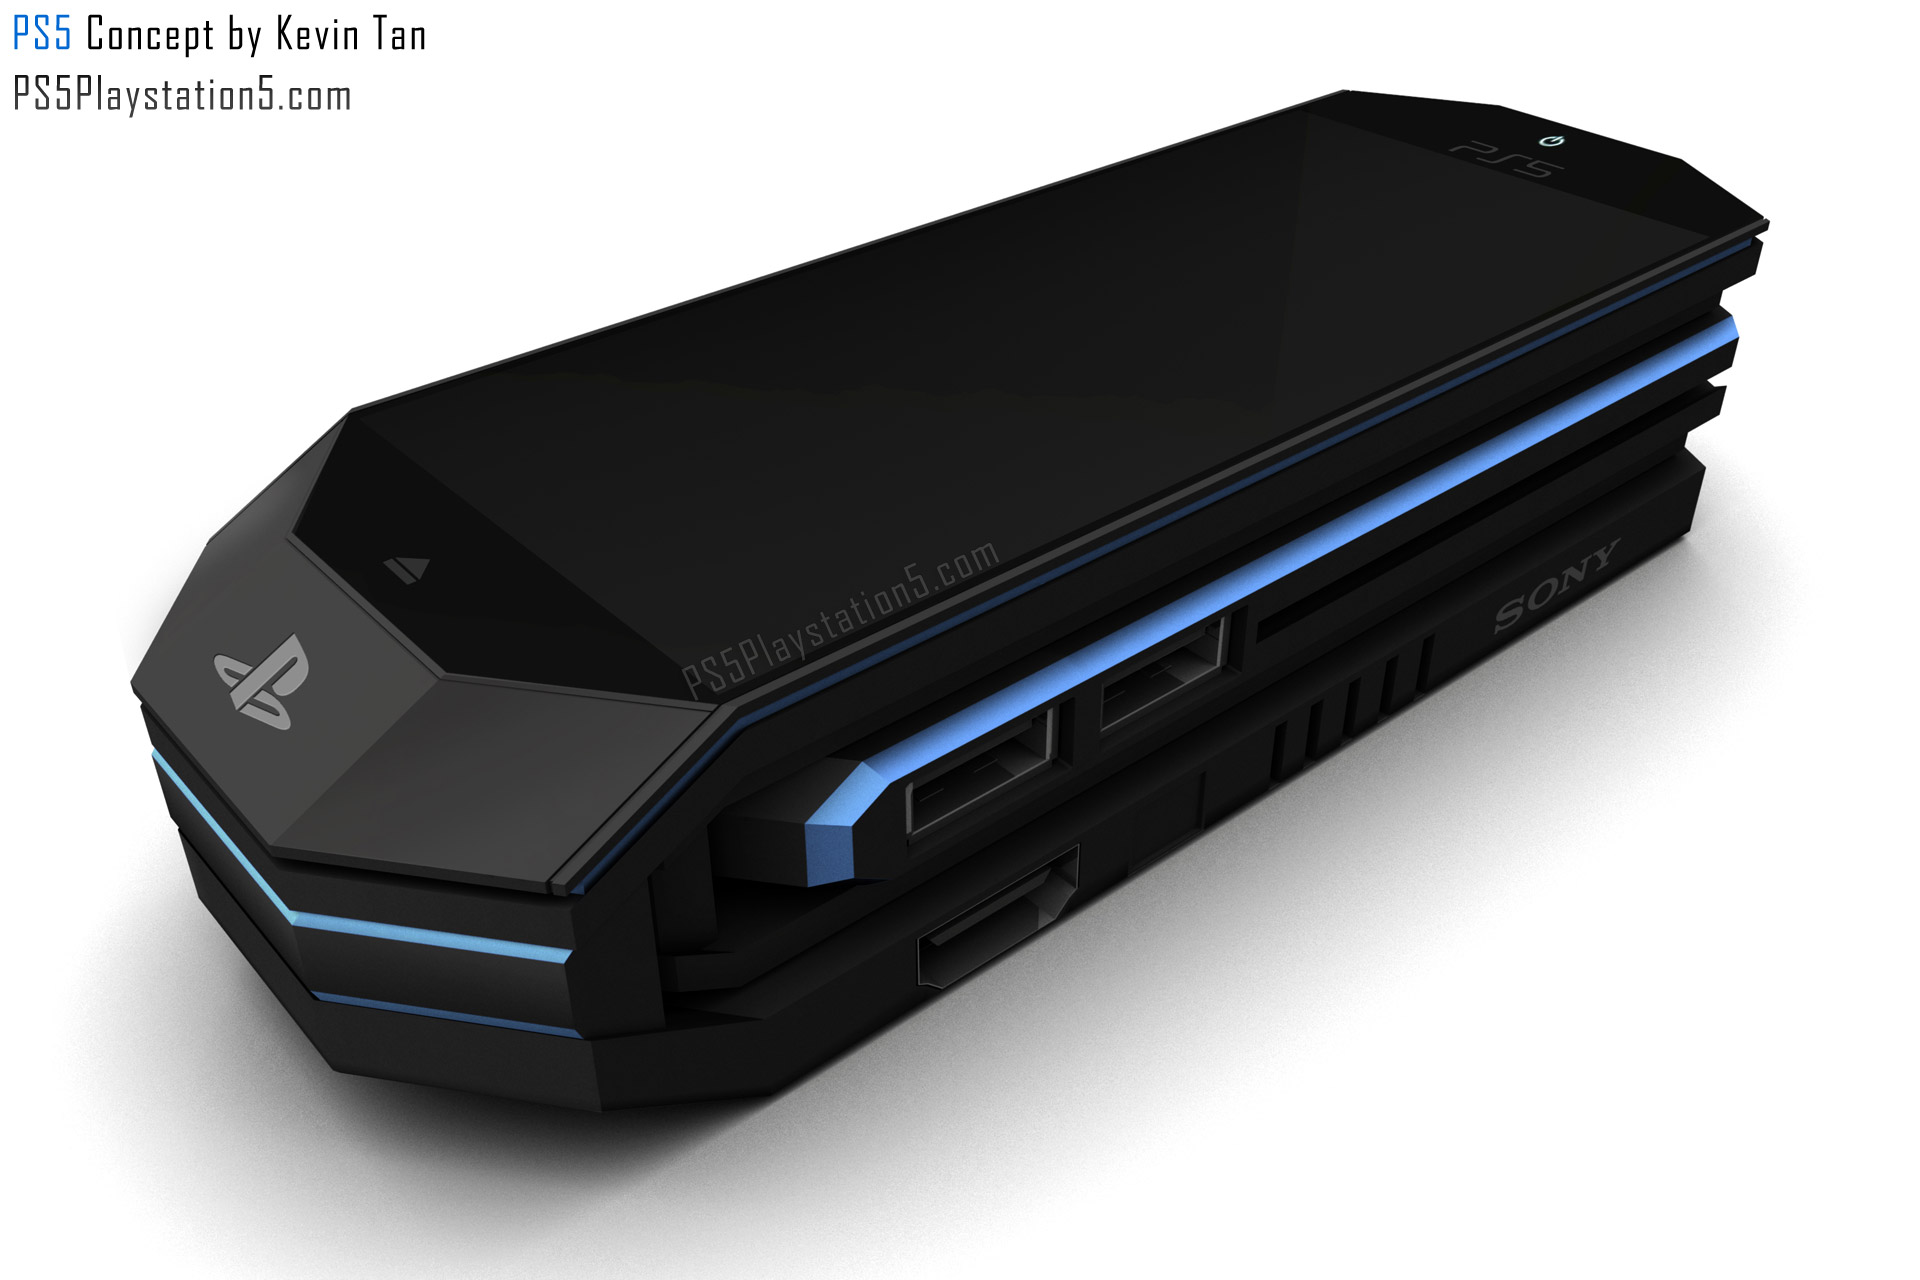 PS5 Transformer Portable Concept By Kevin Tan